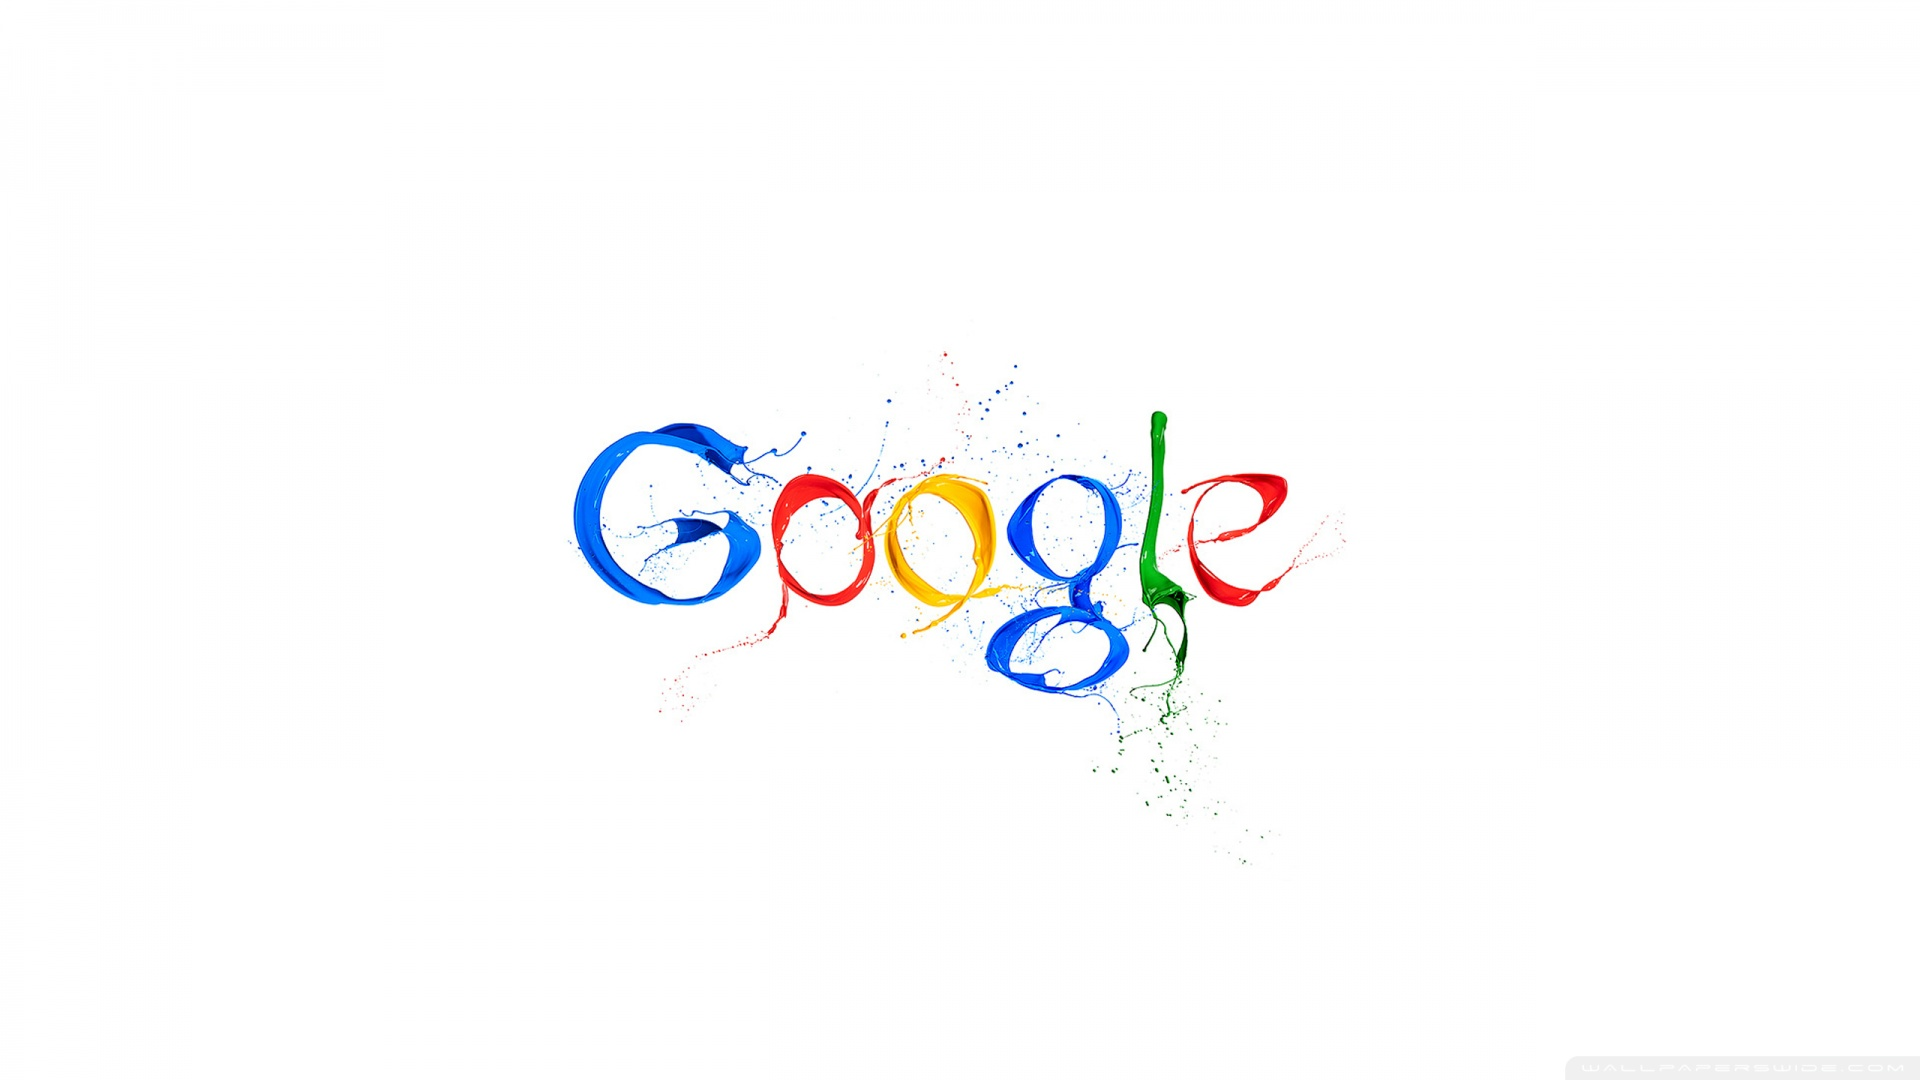 best-cool-google-hd-wallpapers-free-search-engine-for-you